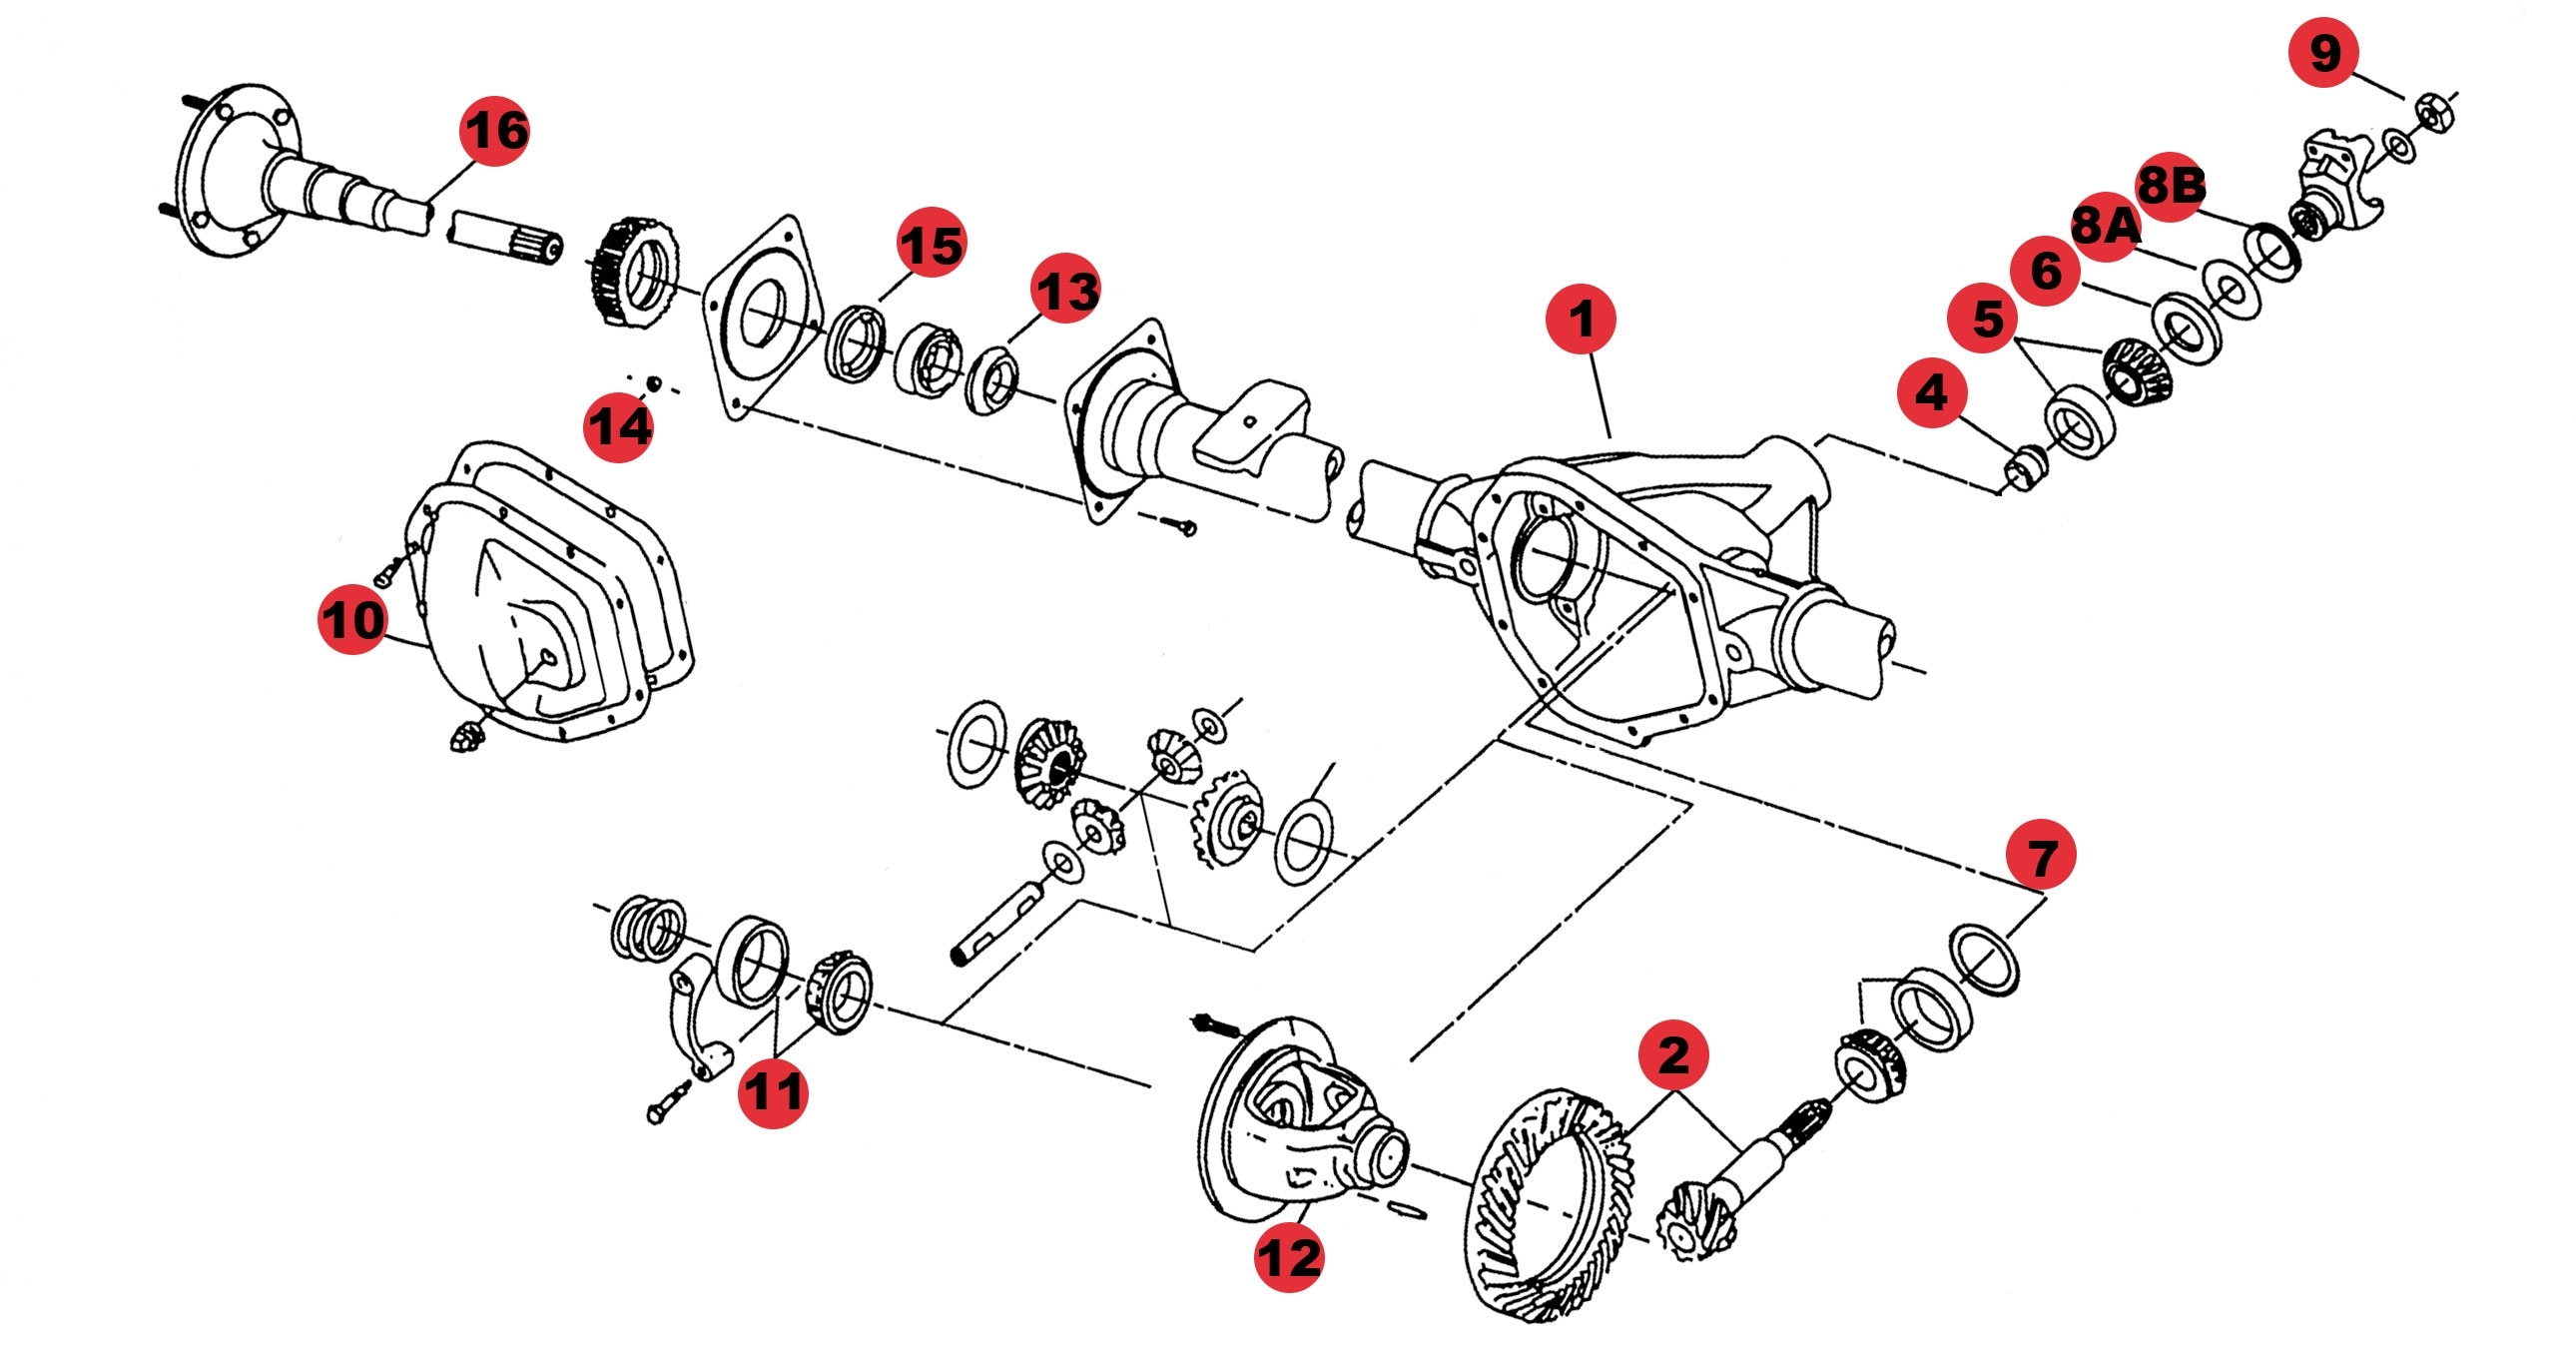 Shopdiagram - Jeep Axle Parts - Axle For Grand Cherokee Rear in 2005 Jeep Grand Cherokee Parts Diagram